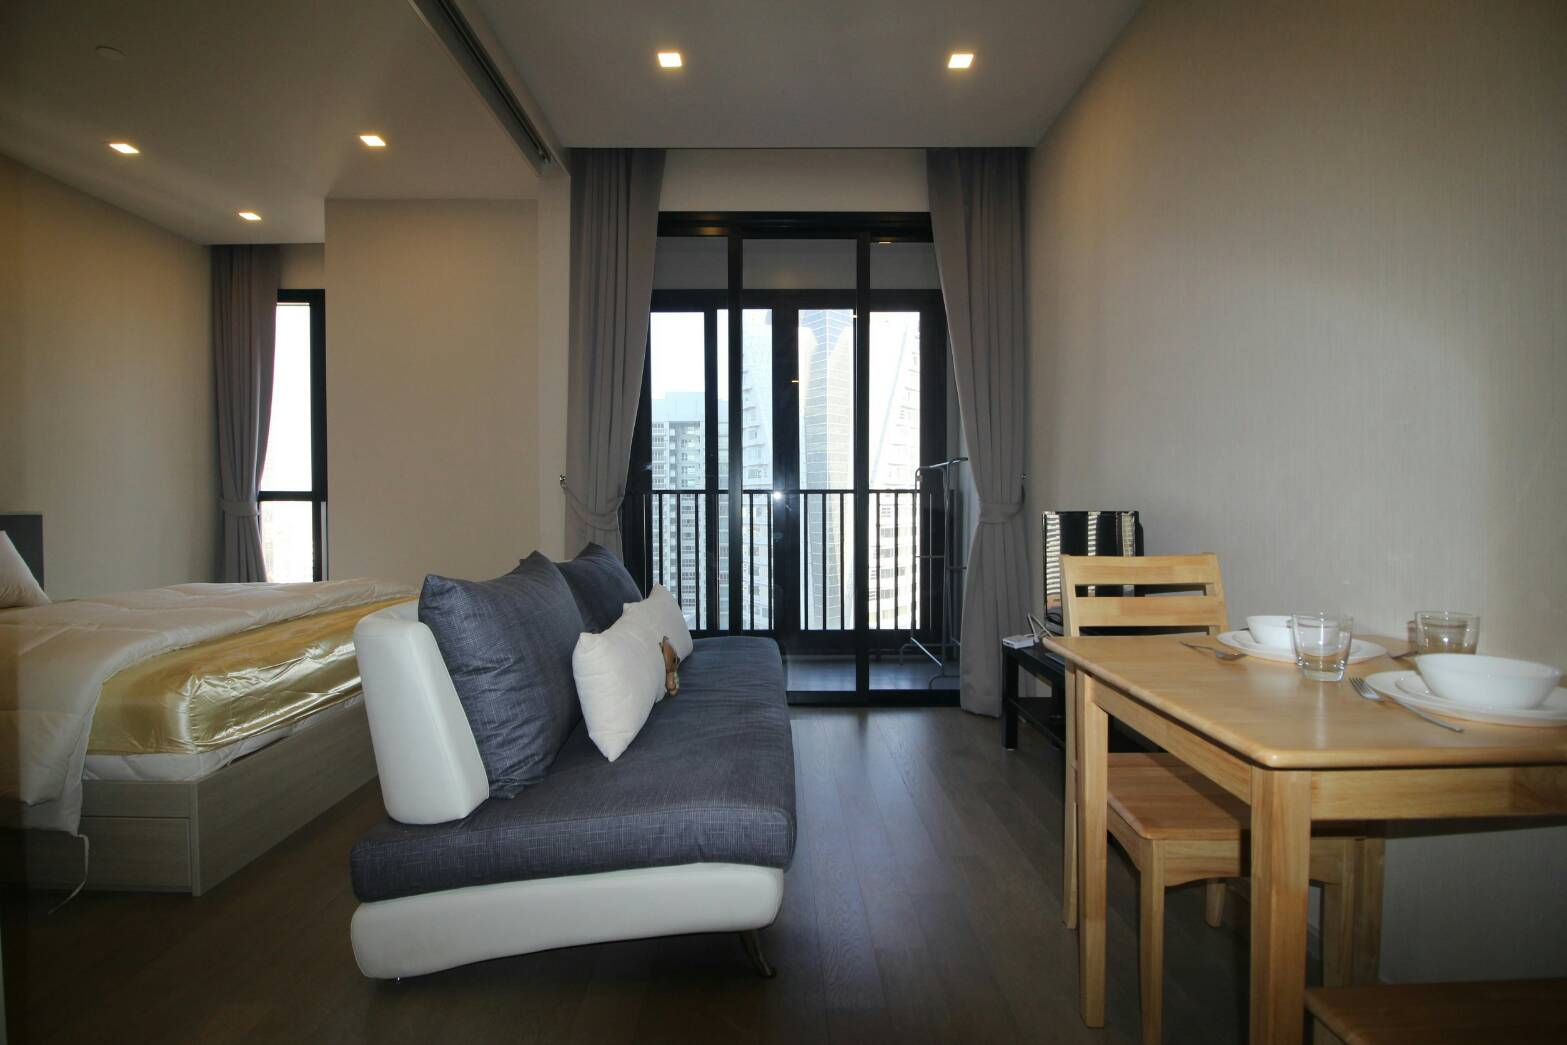 1 bedroom apartment for rent near me